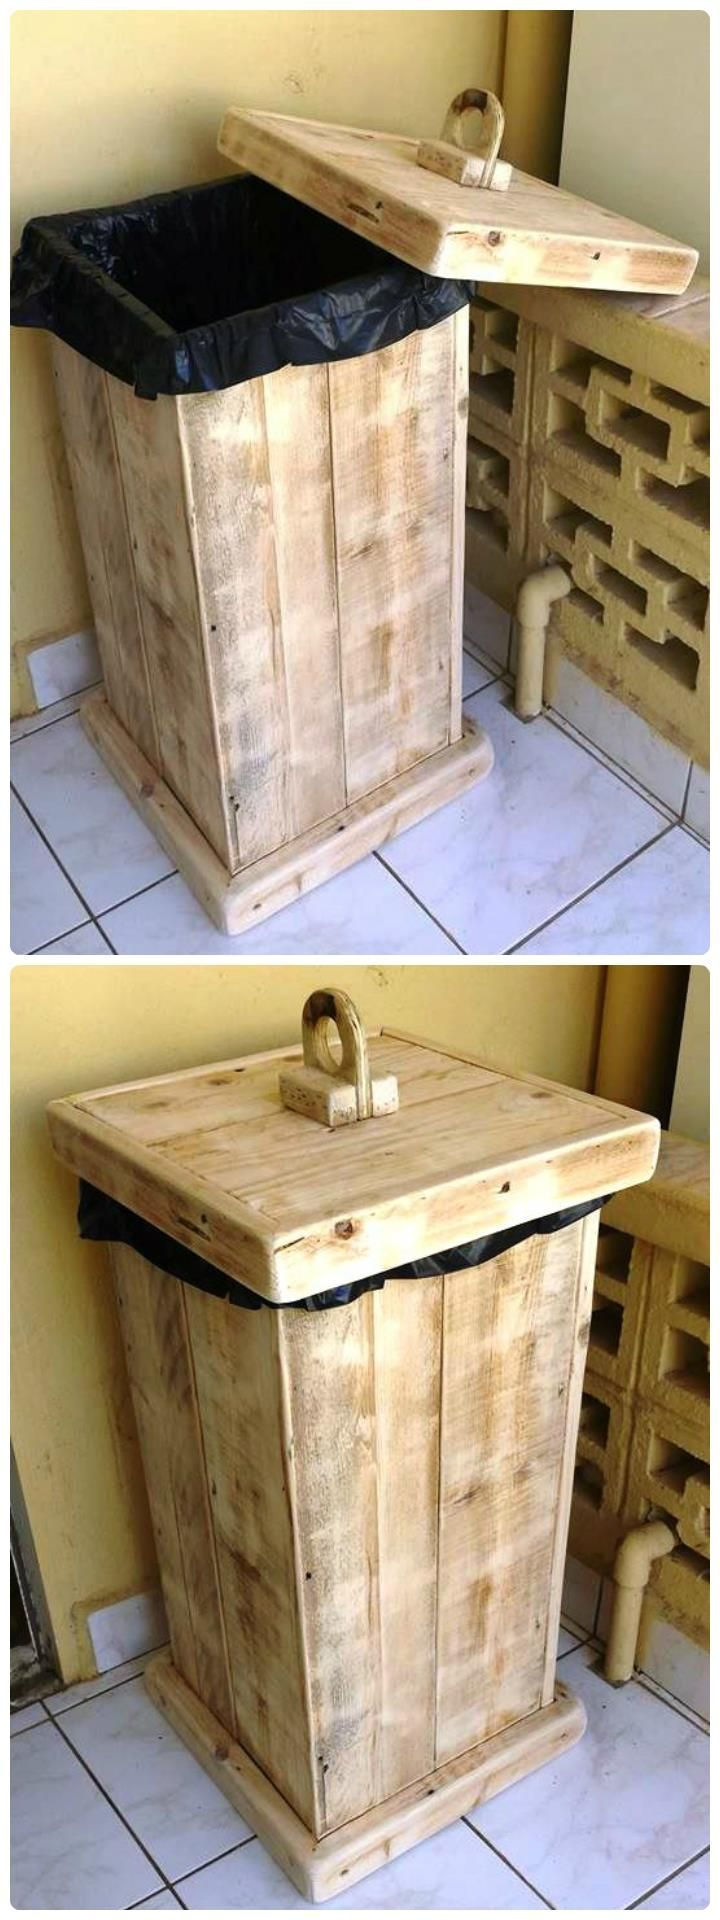 20 Best Pallet Ideas to DIY Your